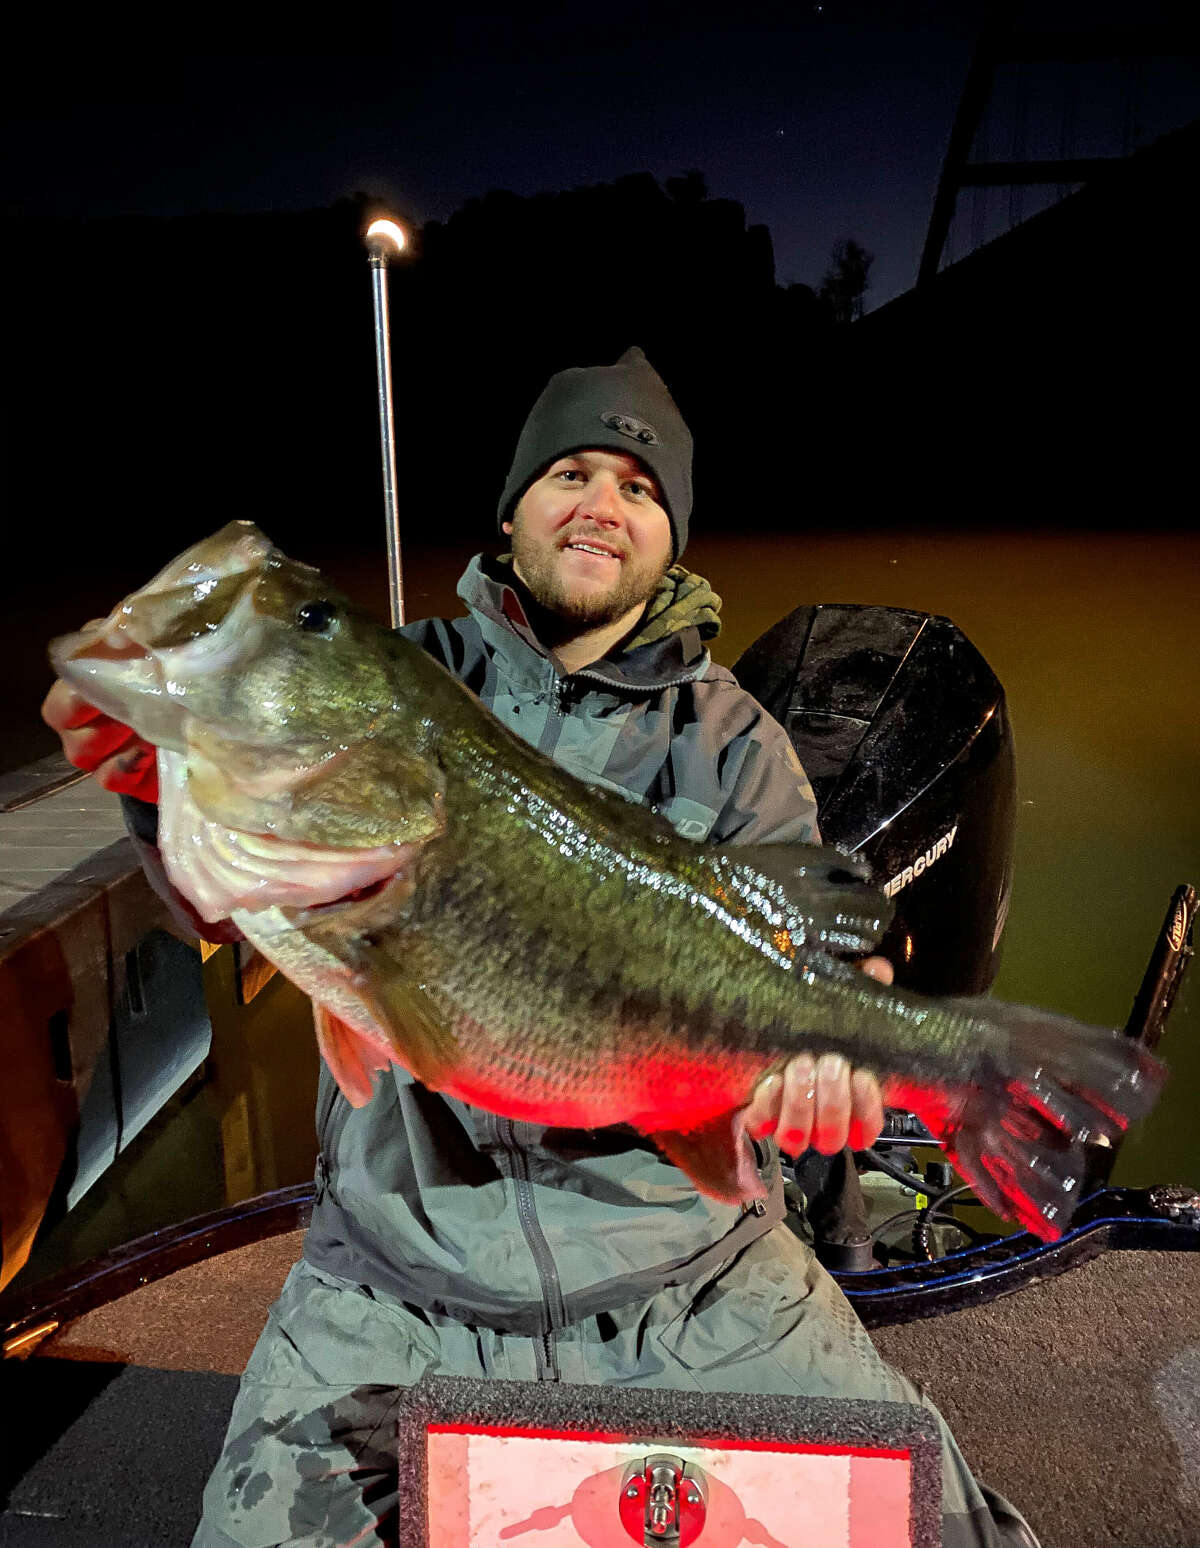 On Thursday, CJ Oates from Largo Vista reeled in a massive 13.02-pound largemouth bass while out fishing in Lake Austin. According to the Texas Parks and Wildlife Department, largemouth bass over 12 pounds are